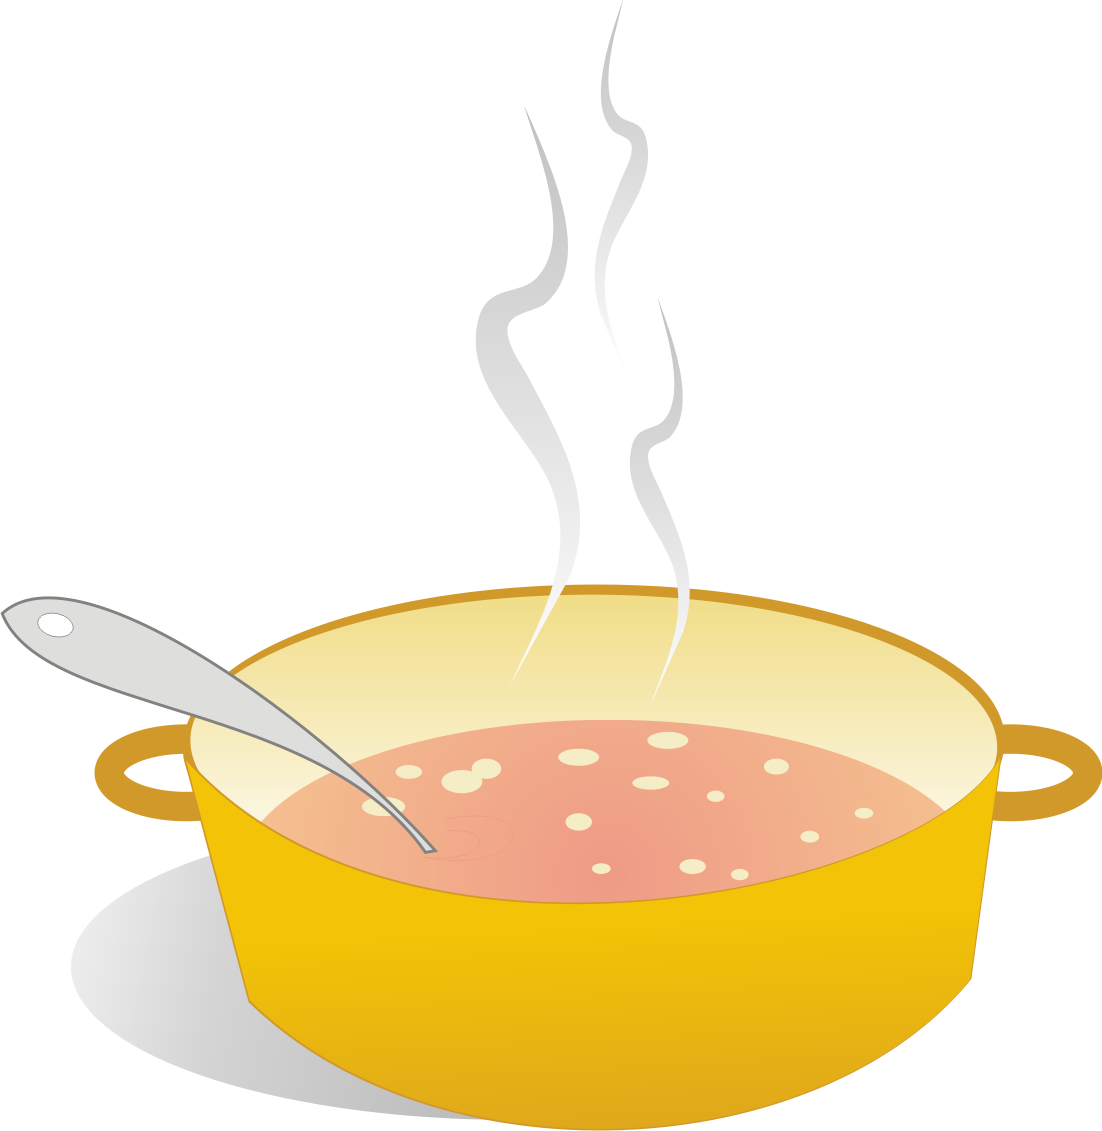 Dish clipart soup bowl. Drawing at getdrawings com